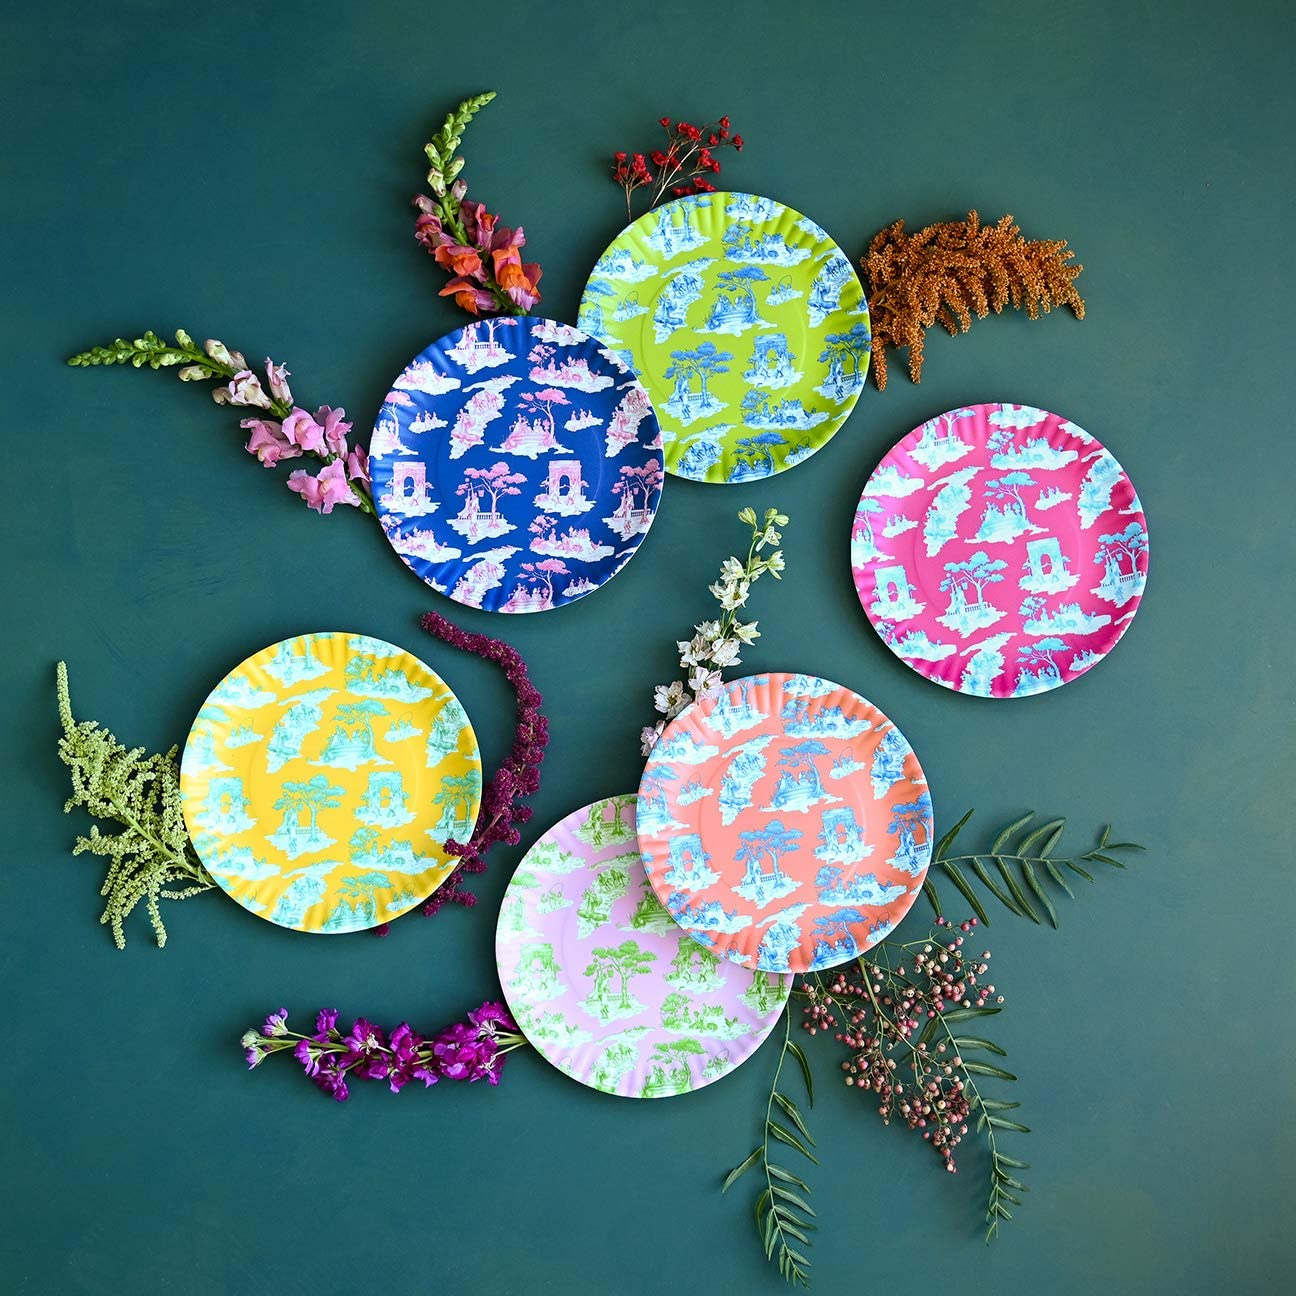 Set of six patterned plate on teal background with flowers